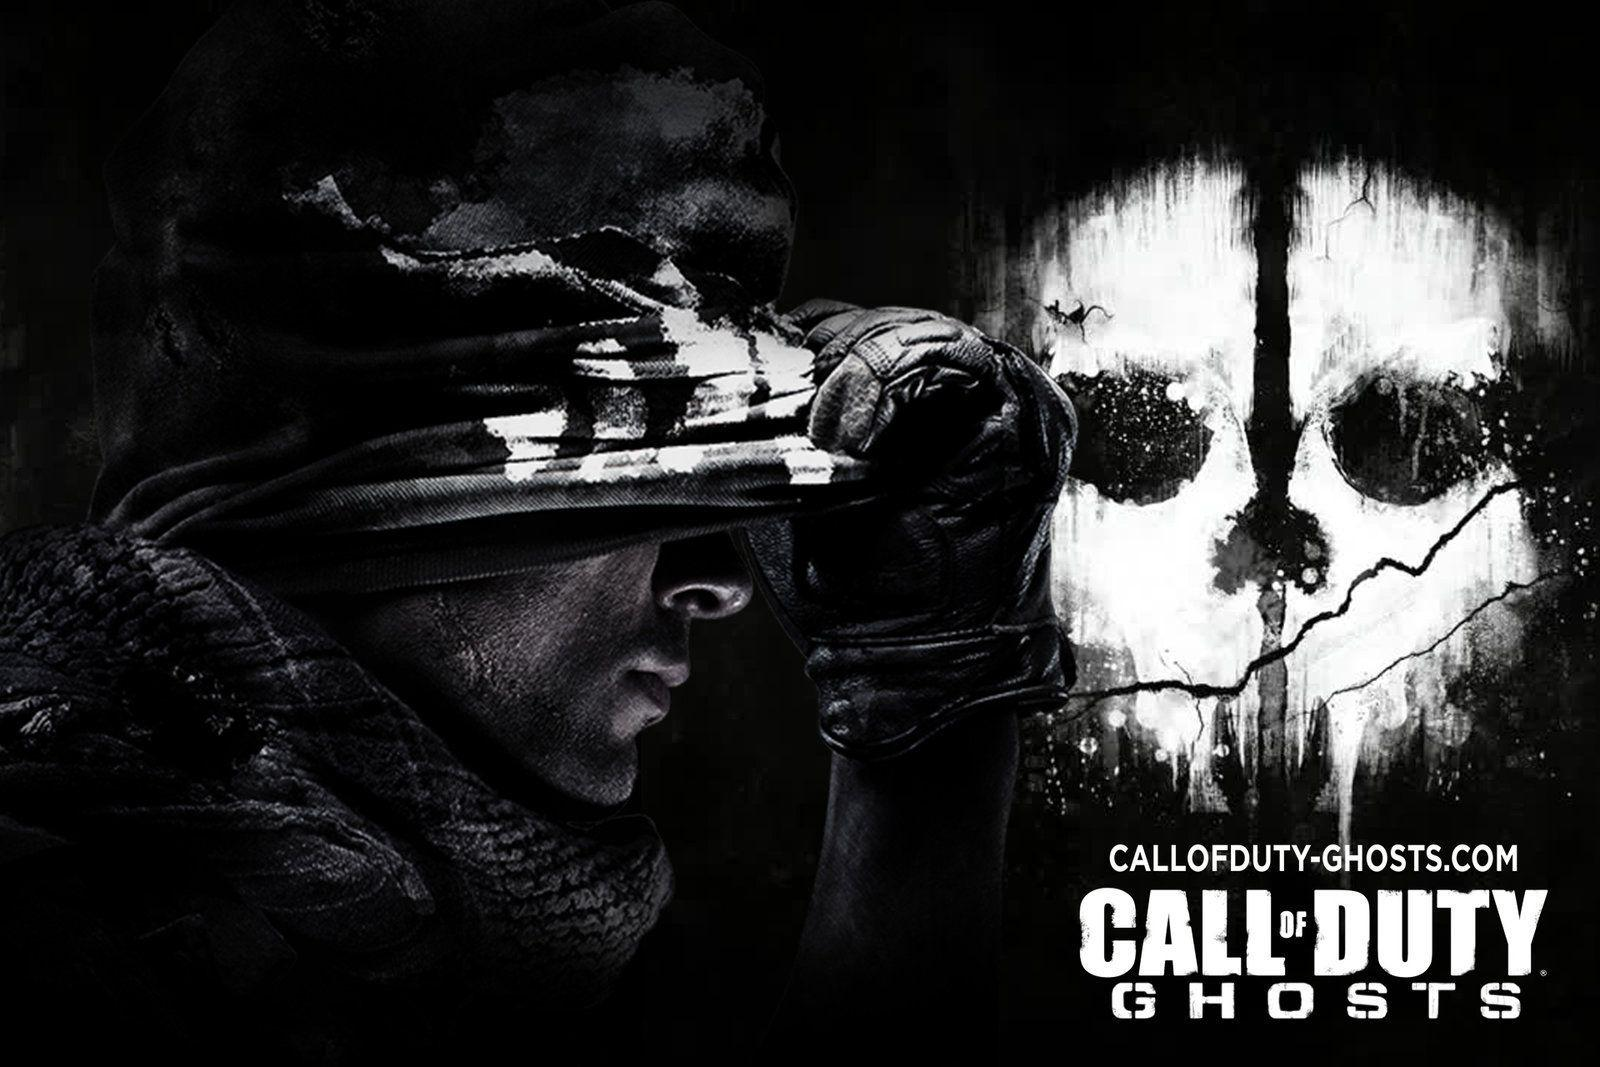 Call of Duty Ghosts Wallpapers by codwallpapers